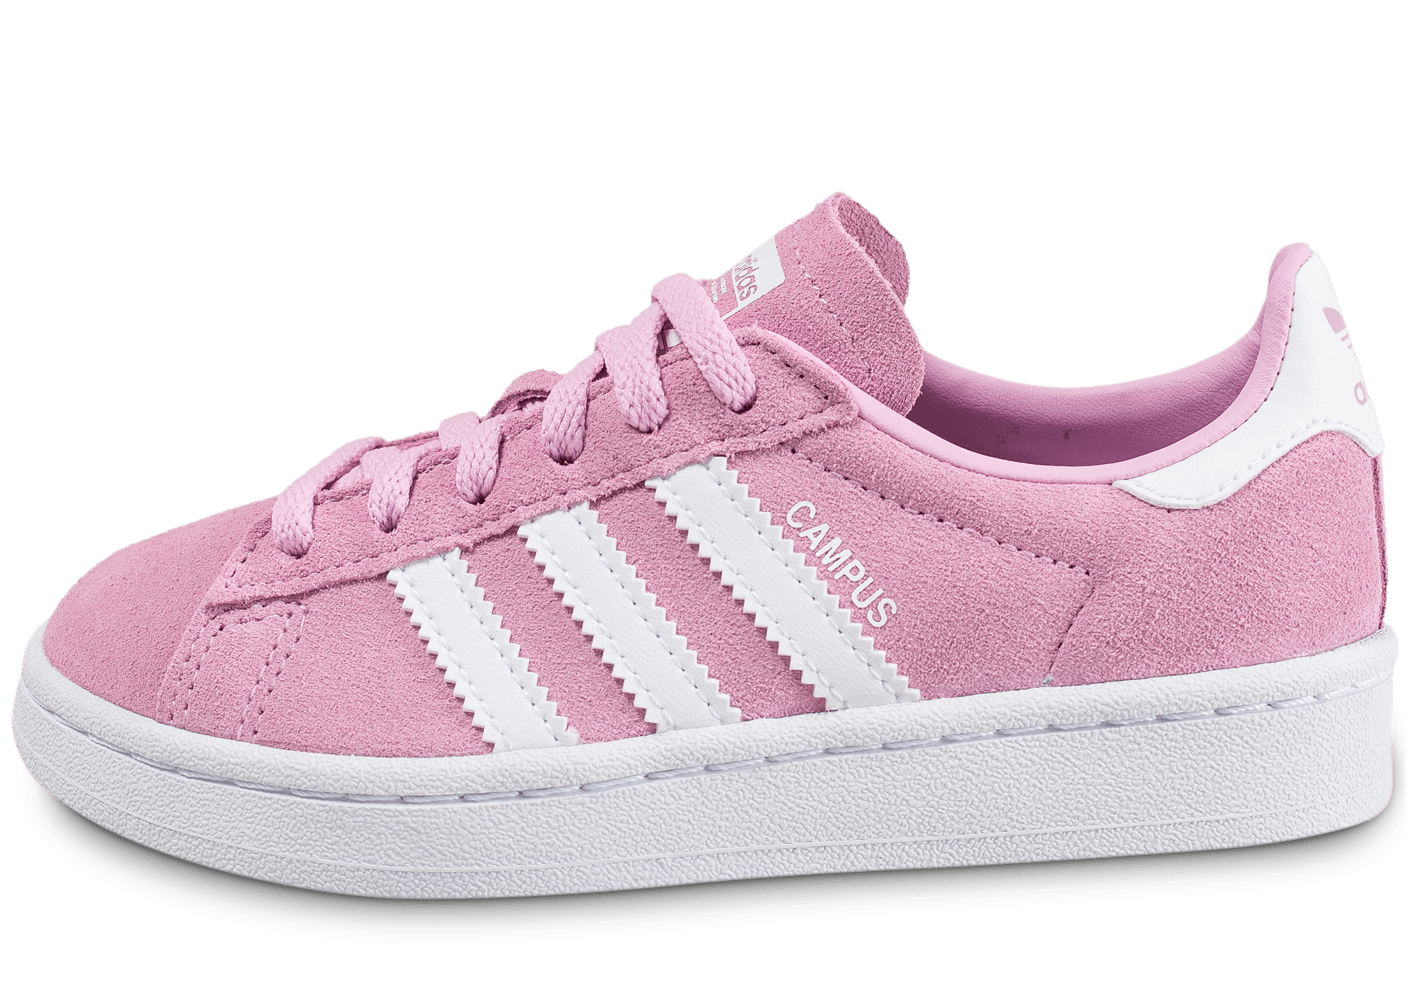 adidas campus enfant rose chaussures adidas chausport. Black Bedroom Furniture Sets. Home Design Ideas